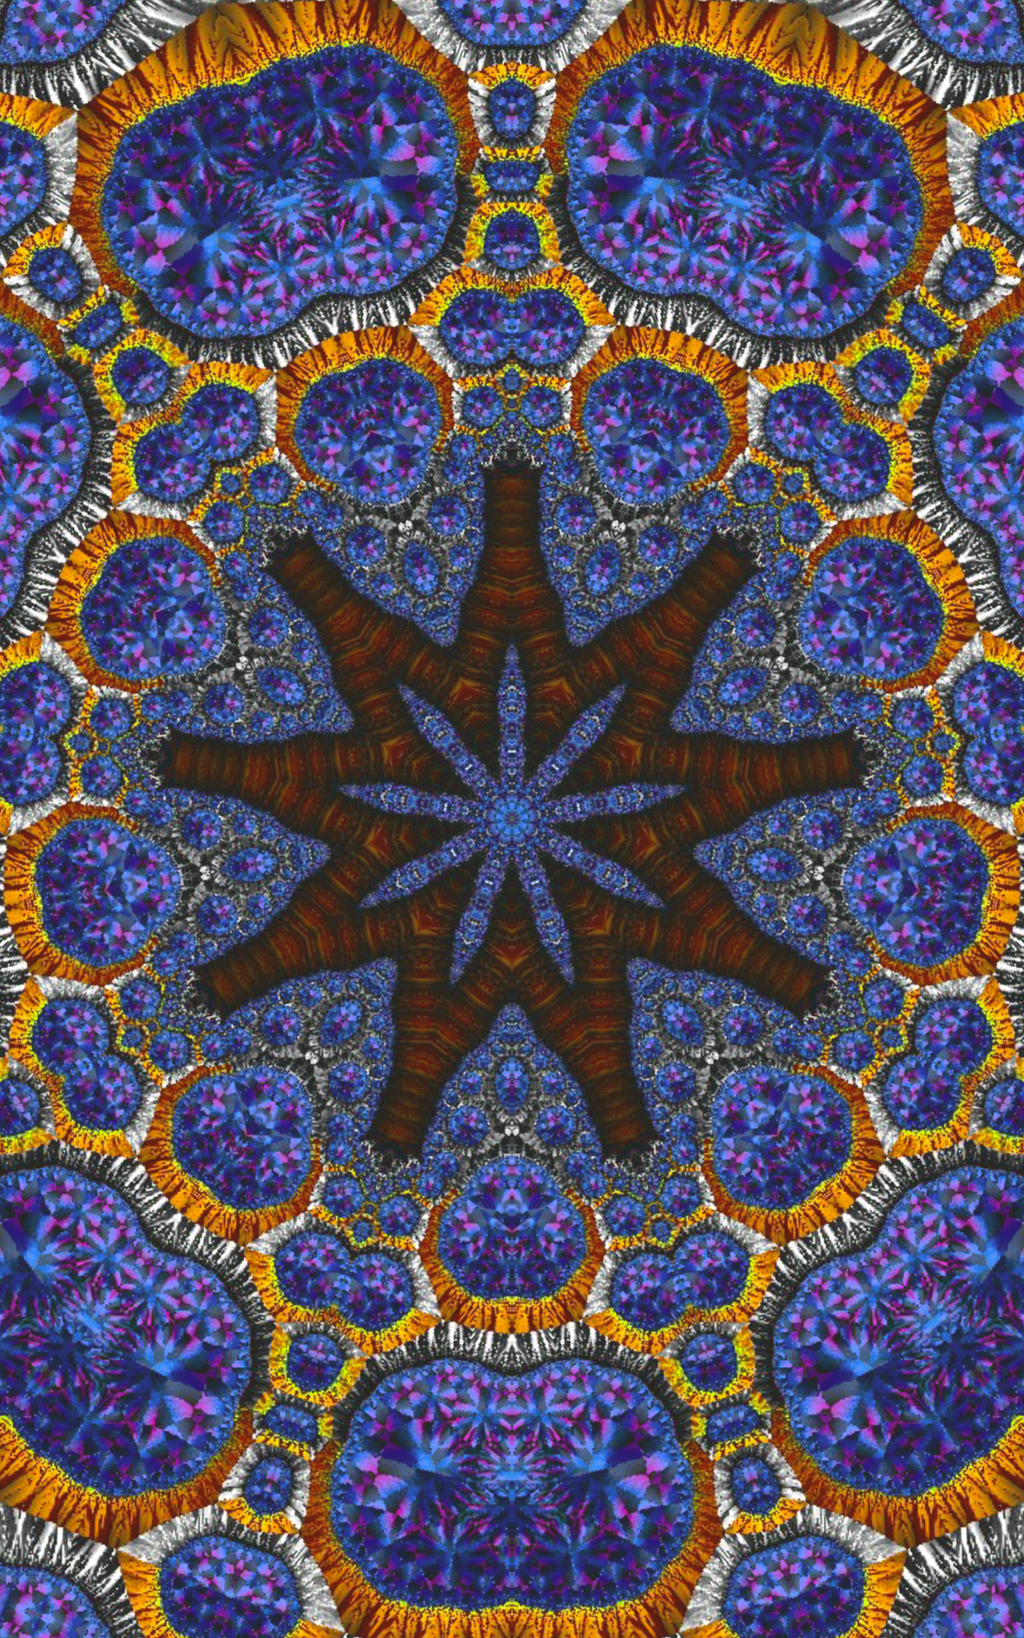 A Mosaic Starfish in the Bathhouse by FlyingMatthew